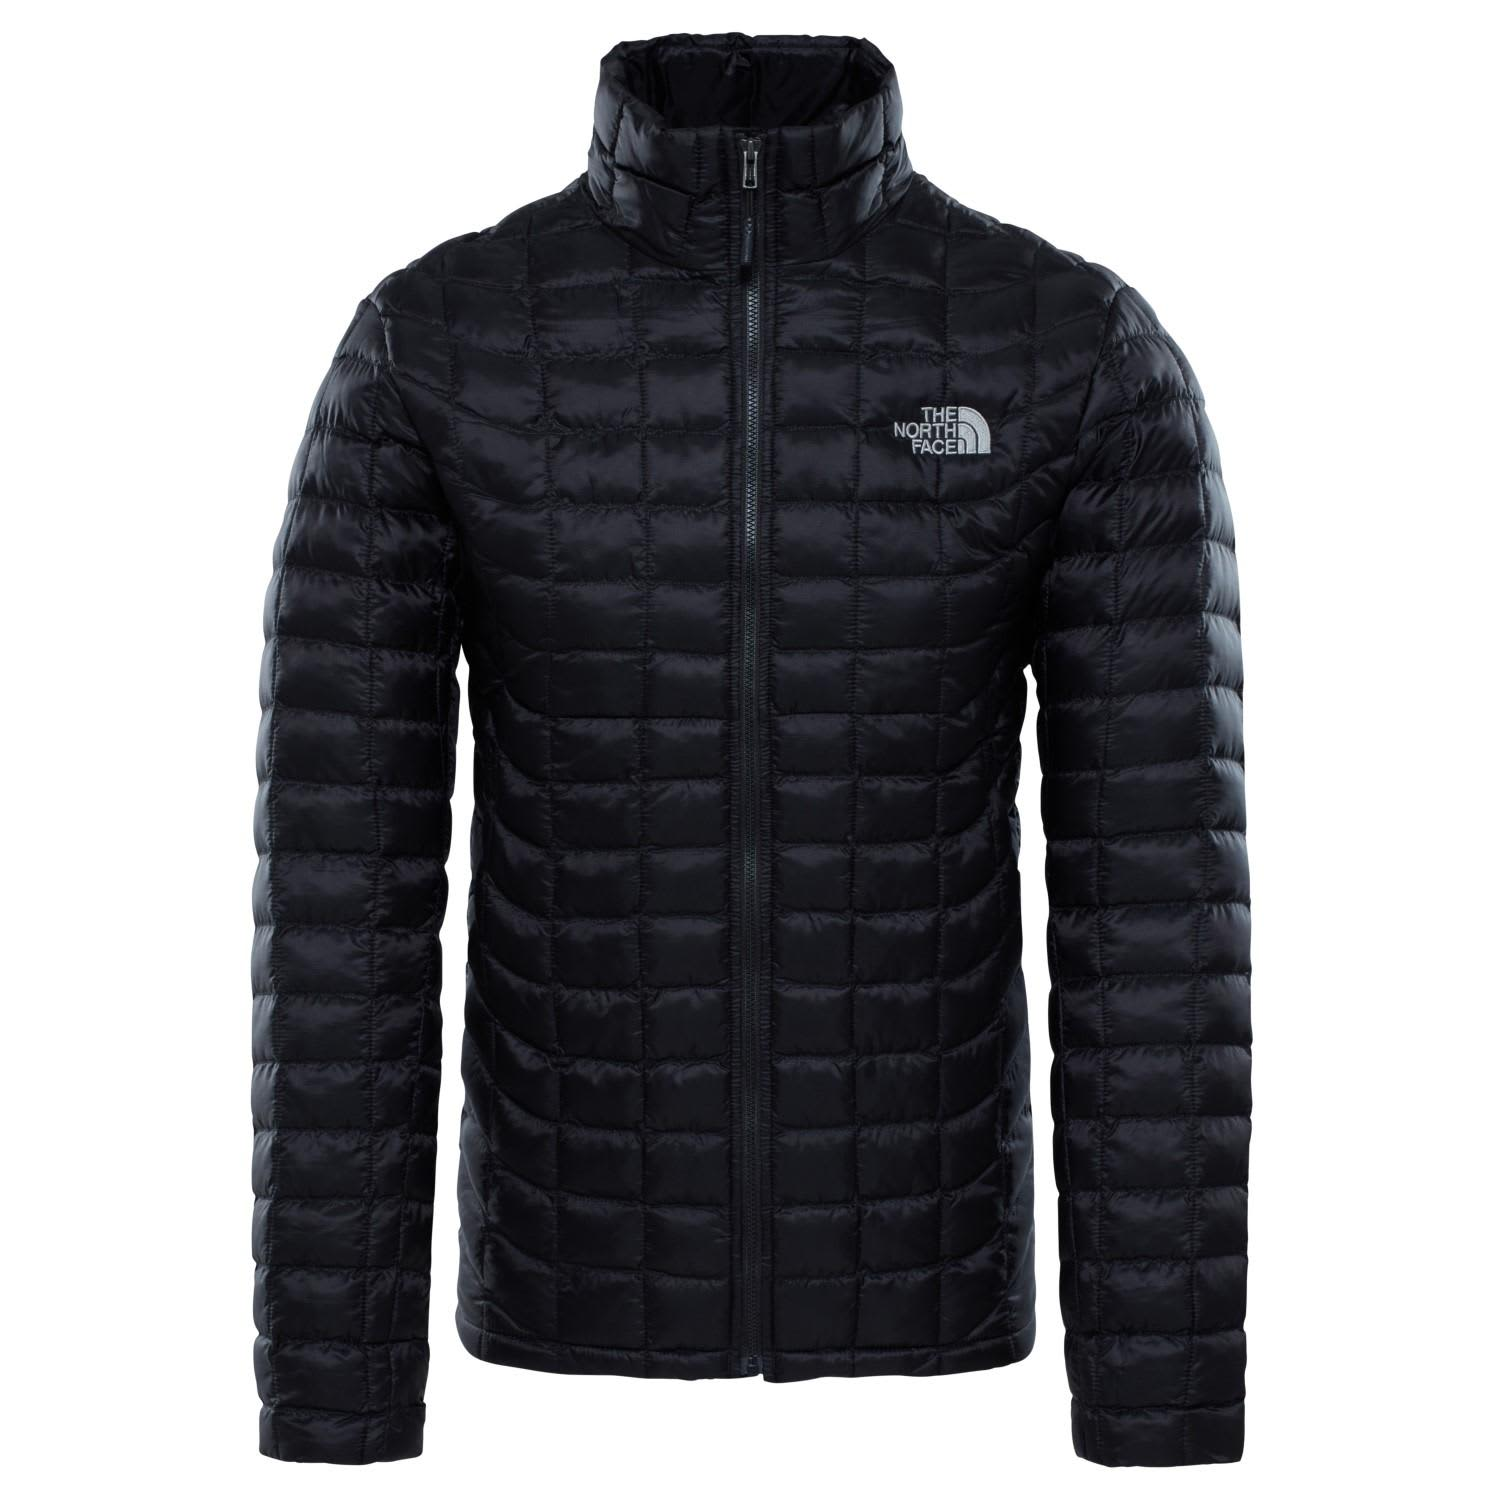 8f508f44e The North Face Men's Thermoball Full Zip Jacket